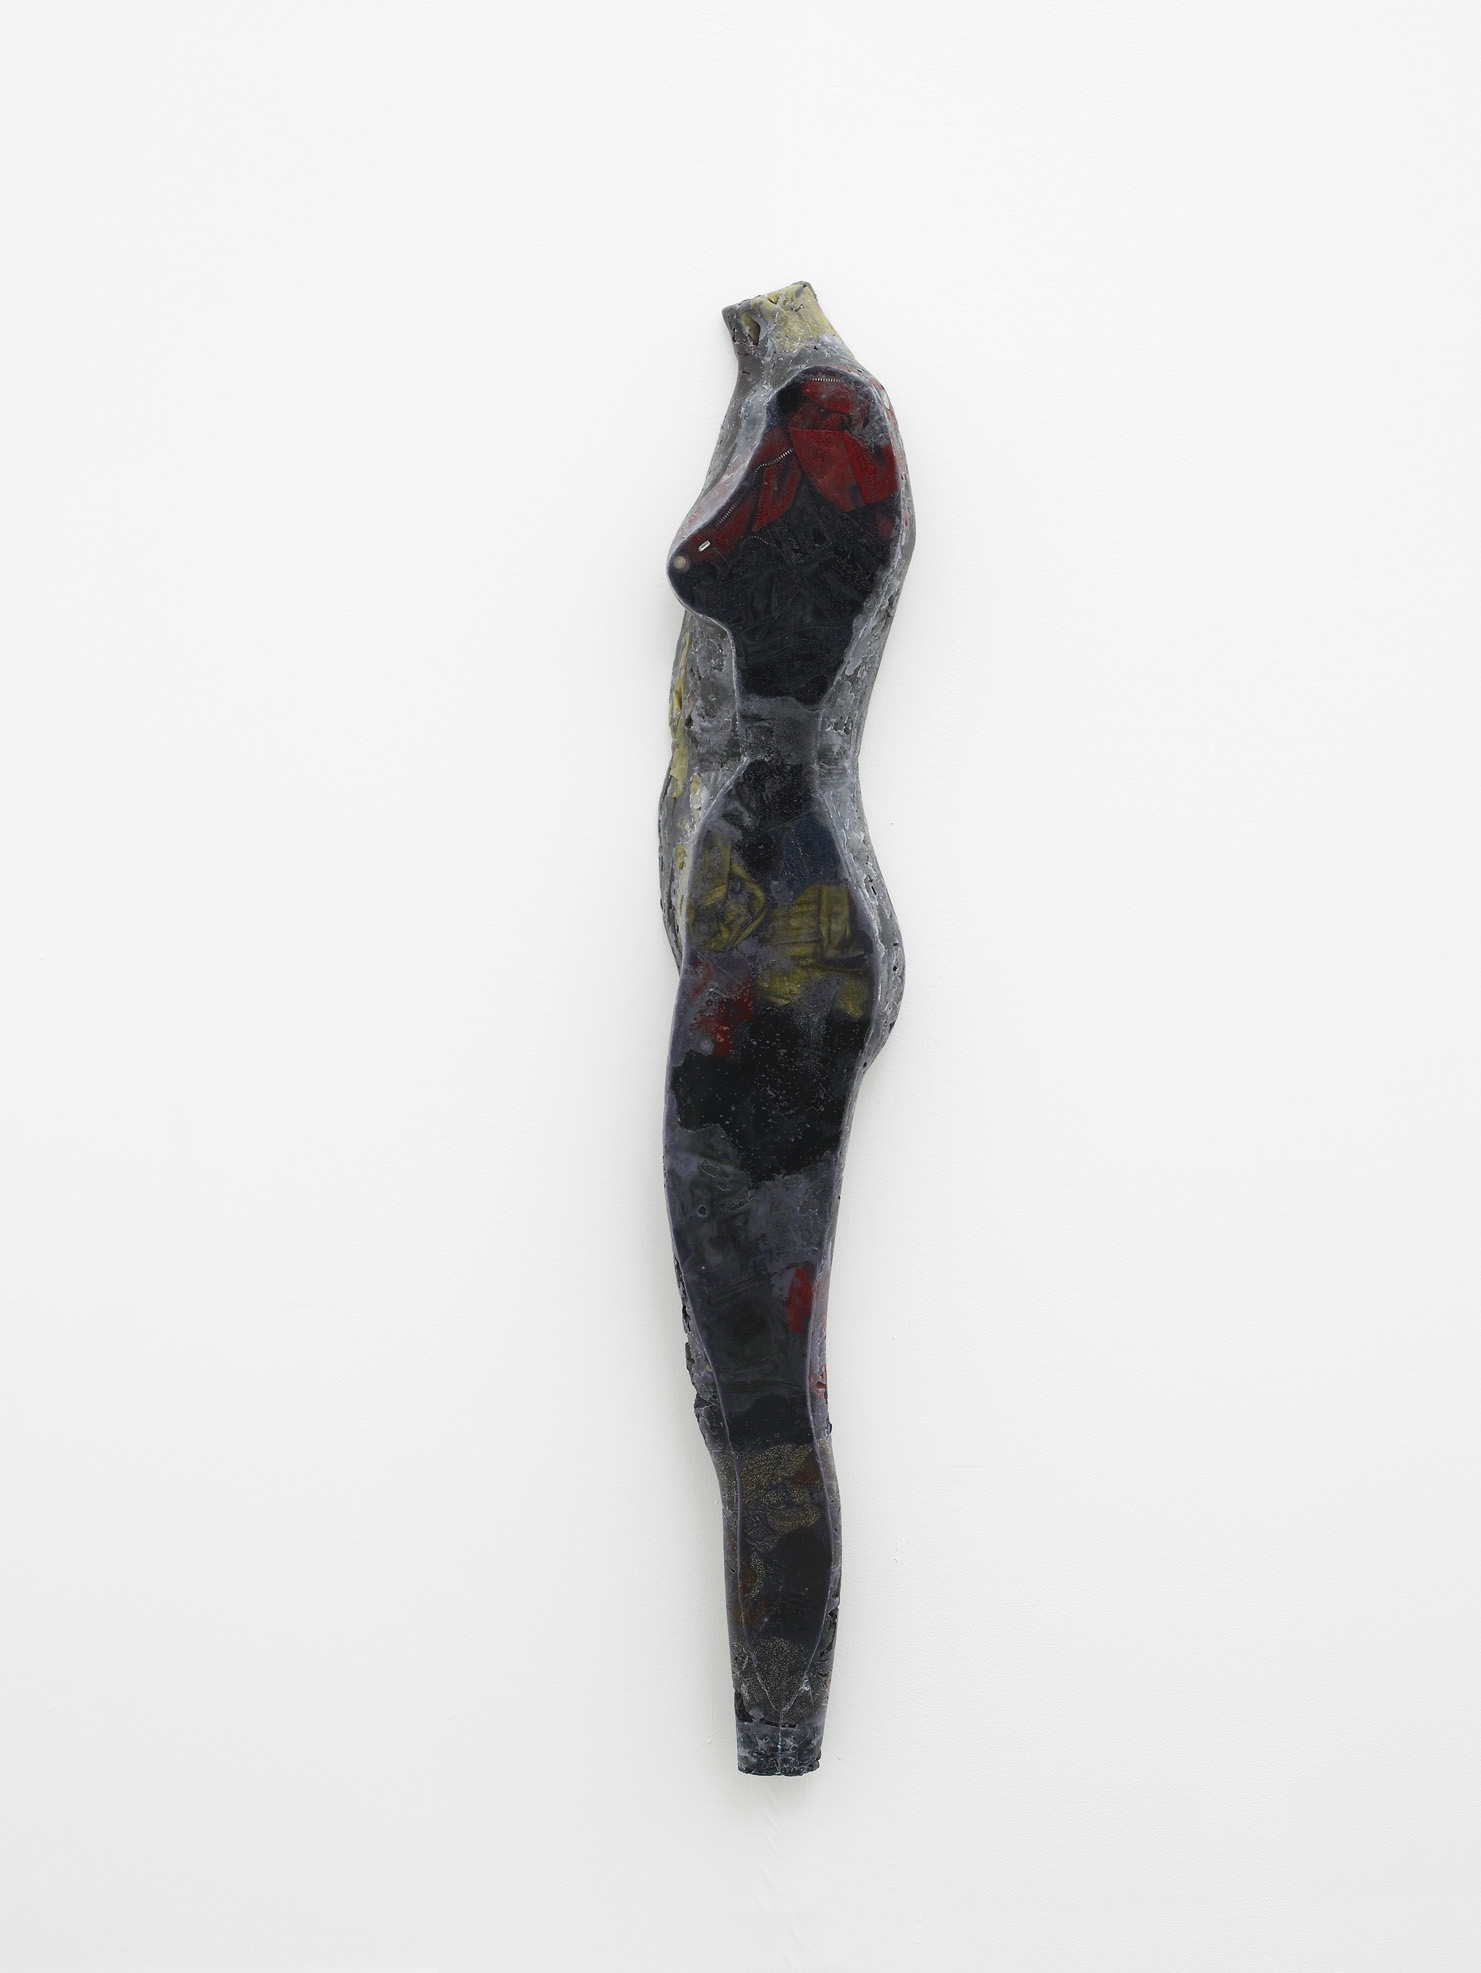 Simone  2013  Wax, clothing and varnish  150 x 24 x 9 cm / 59 x 9.4 x 3.5 in